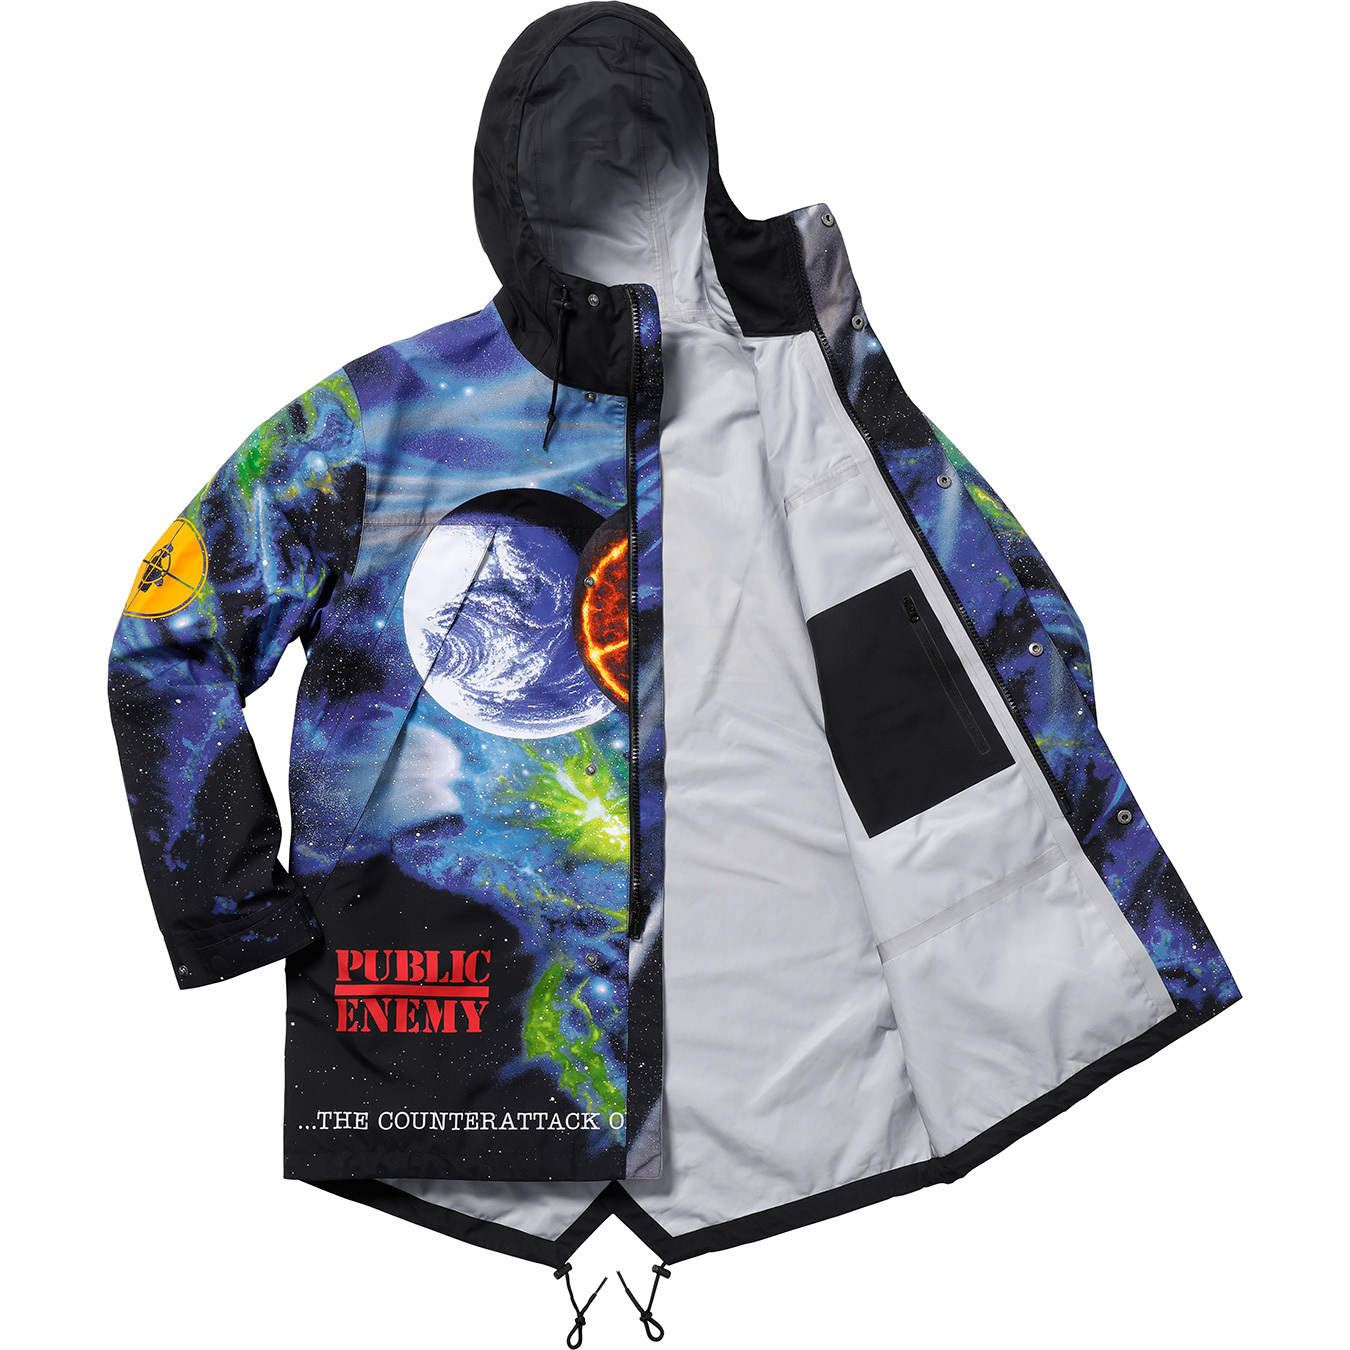 supreme-undercover-public-enemy-18ss-week4-release-20180317-taped-seam-parka